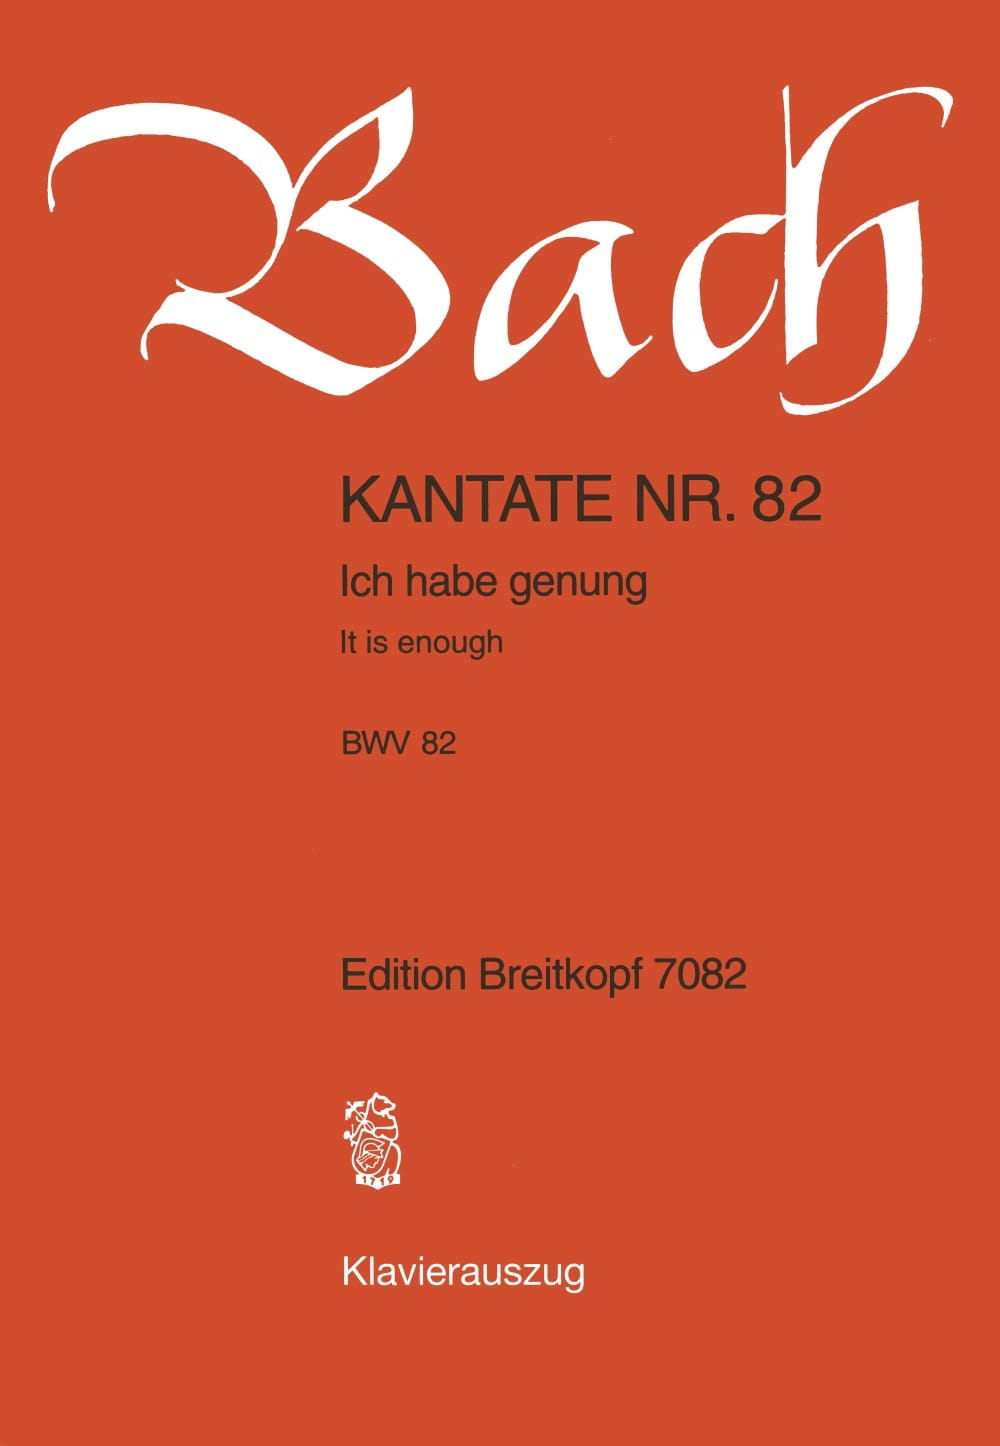 Cantate 82 Ich Habe Genug - BACH - Partition - laflutedepan.com